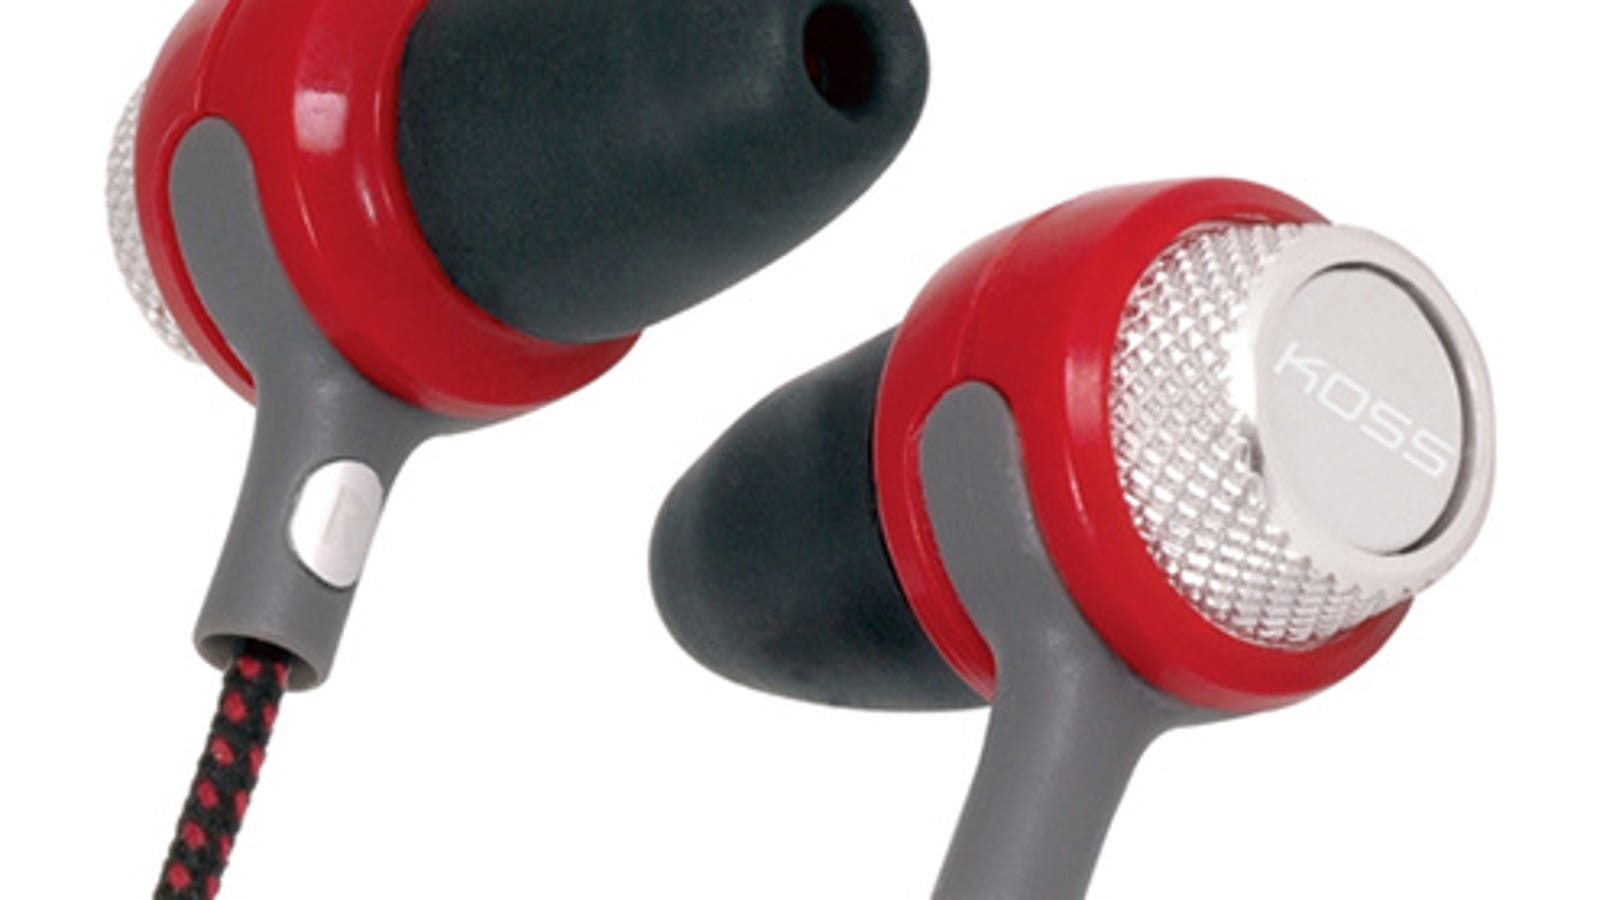 ear buds anti-grassess - Screw-to-Fit Koss Earbuds Fill Up Your Head-Holes